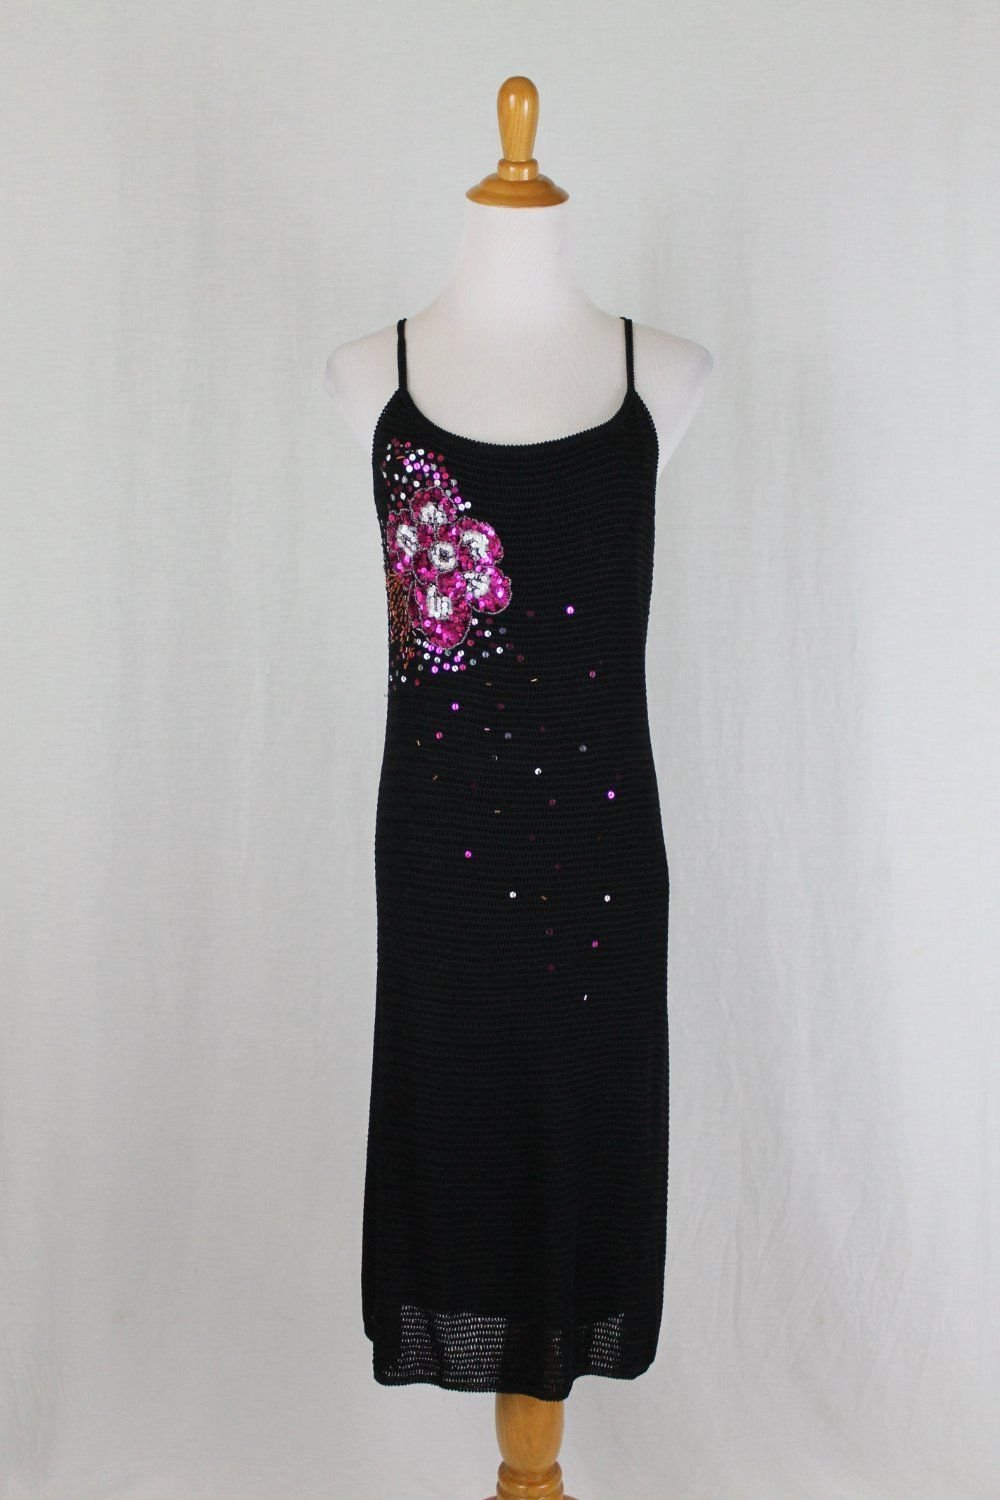 Vintage Adrianna Papell 90's Beaded Black Crocheted Cross Back Cocktail Dress S